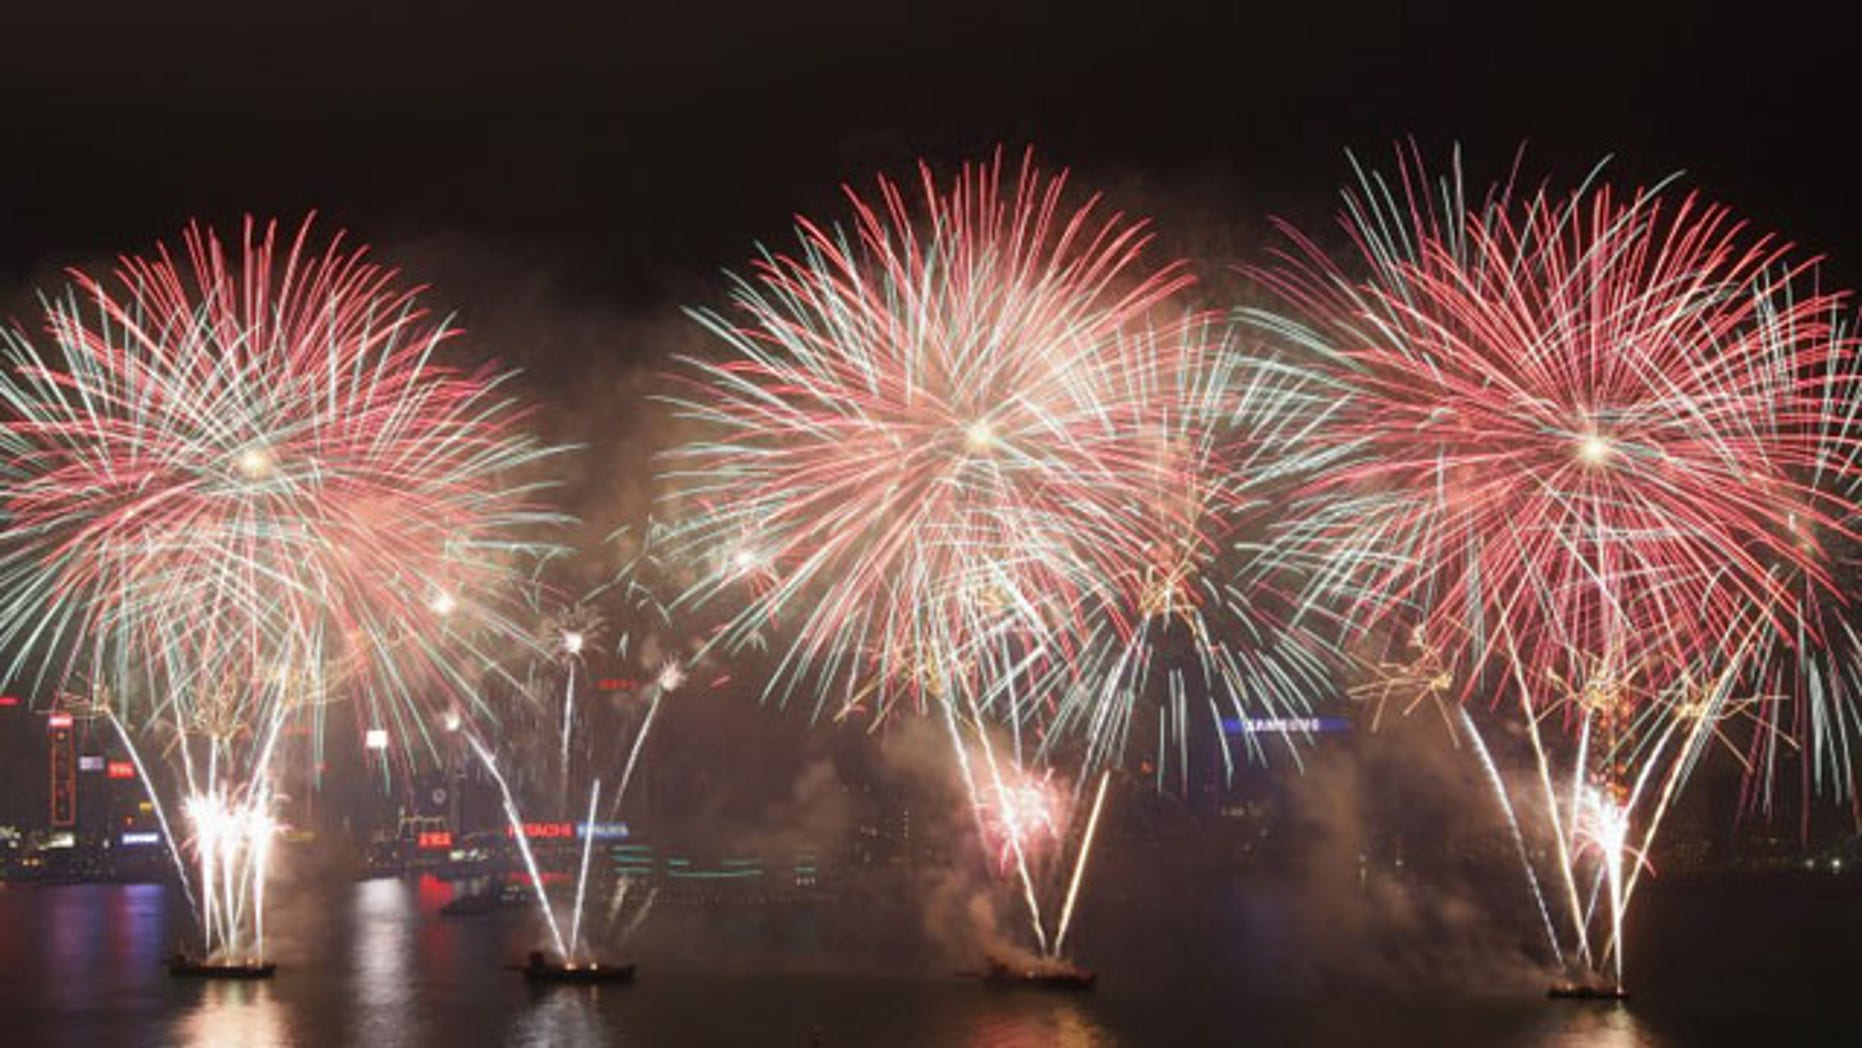 January 24, 2012: Fireworks light up the sky over the Victoria Harbor to celebrate the Chinese Lunar New Year in Hong Kong (Reuters)